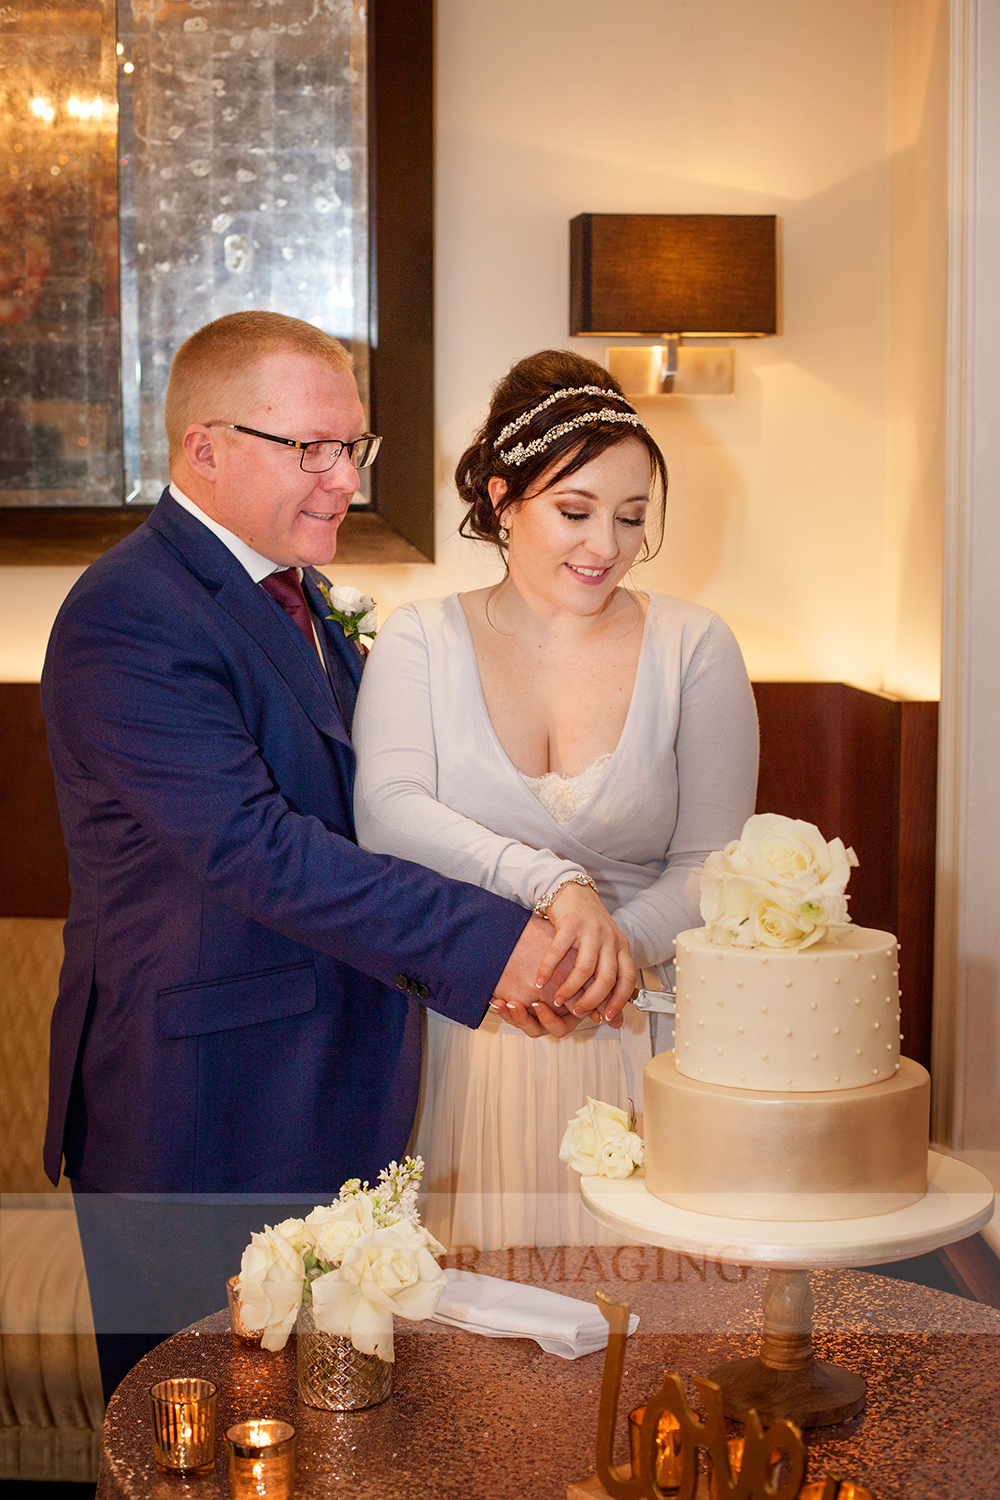 nottingham wedding photographers 59.jpg